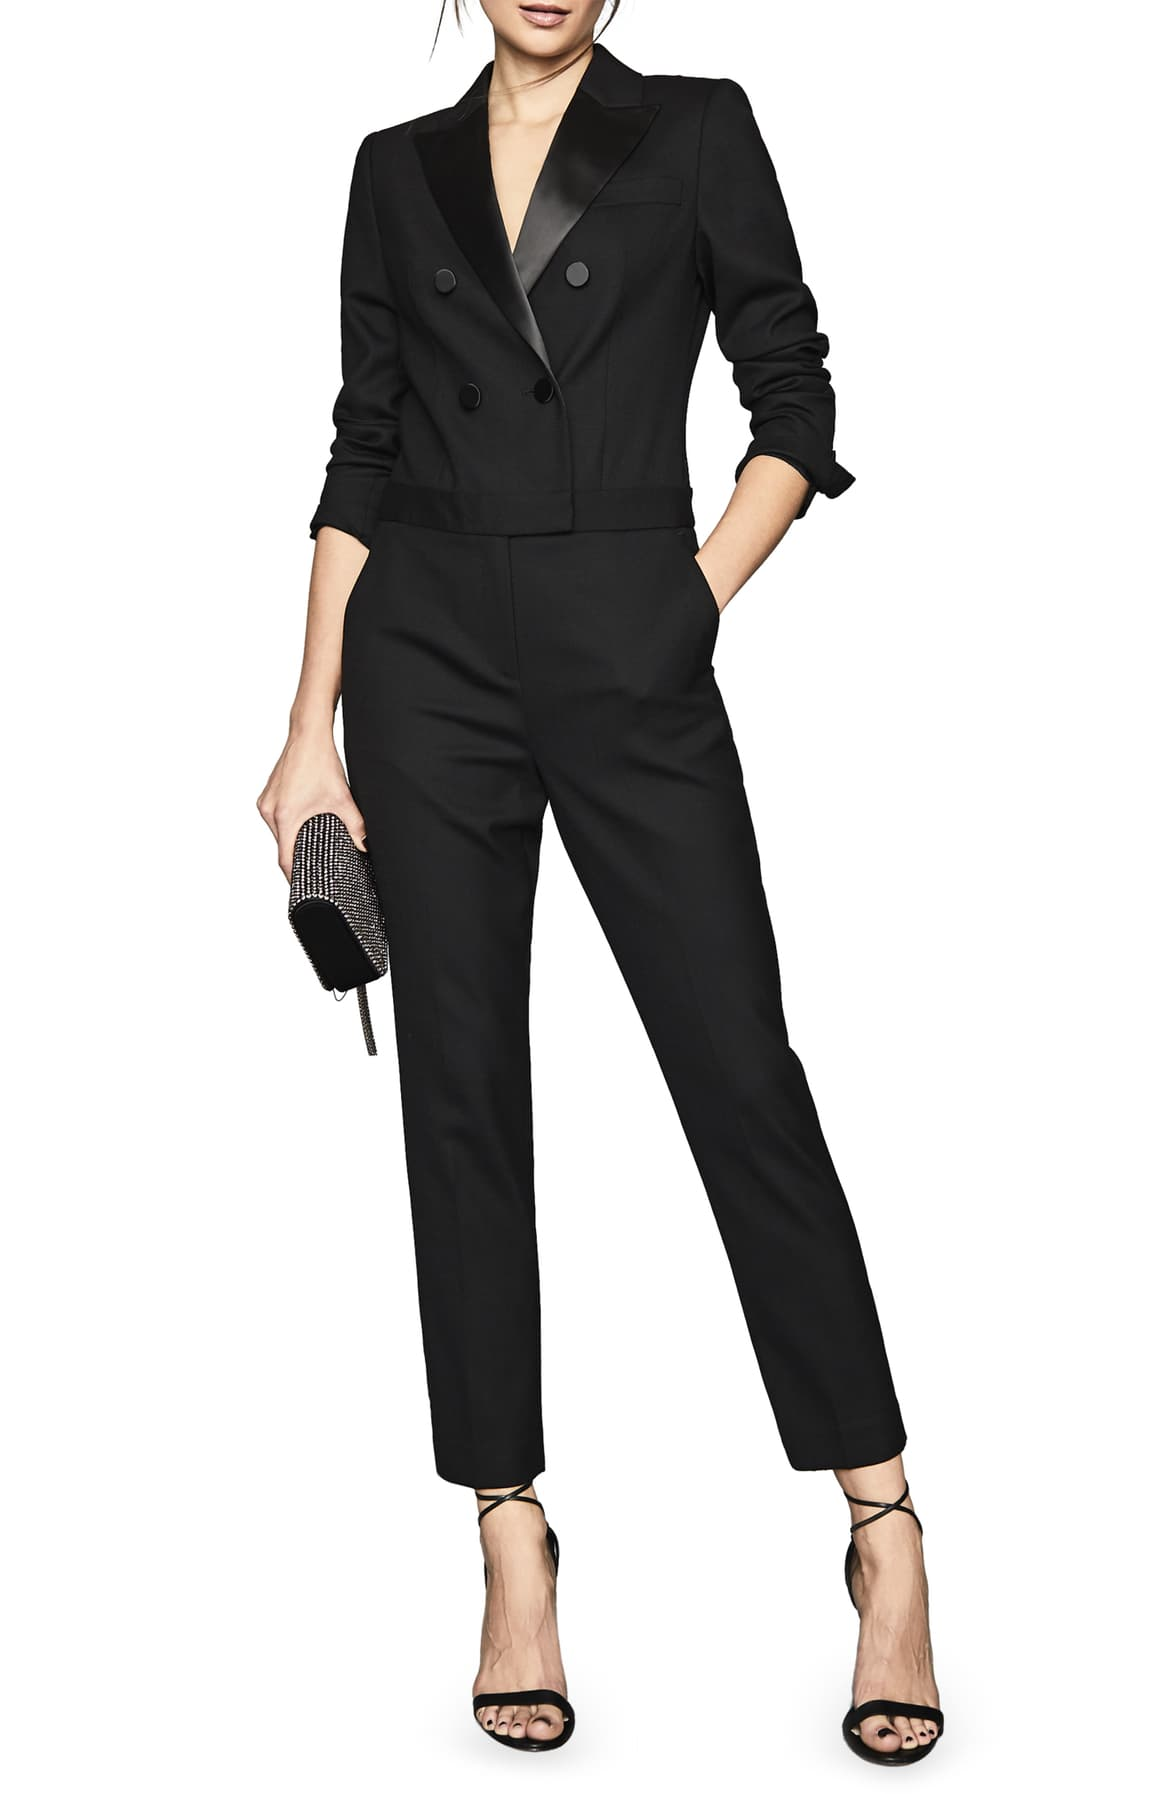 "<a  href=""https://shop.nordstrom.com/s/reiss-mariana-long-sleeve-tuxedo-jumpsuit/5414718/full?origin=keywordsearch-personalizedsort&breadcrumb=Home%2FAll%20Results&color=black"" target=""_blank"" title=""https://shop.nordstrom.com/s/reiss-mariana-long-sleeve-tuxedo-jumpsuit/5414718/full?origin=keywordsearch-personalizedsort&breadcrumb=Home%2FAll%20Results&color=black"">Mariana Long Sleeve Tuxedo Jumpsuit - $620</a>. From cozy to gold hued to tailored, Nordstrom has the hottest trends for getting glam this holiday season! (Credit: Nordstrom)"